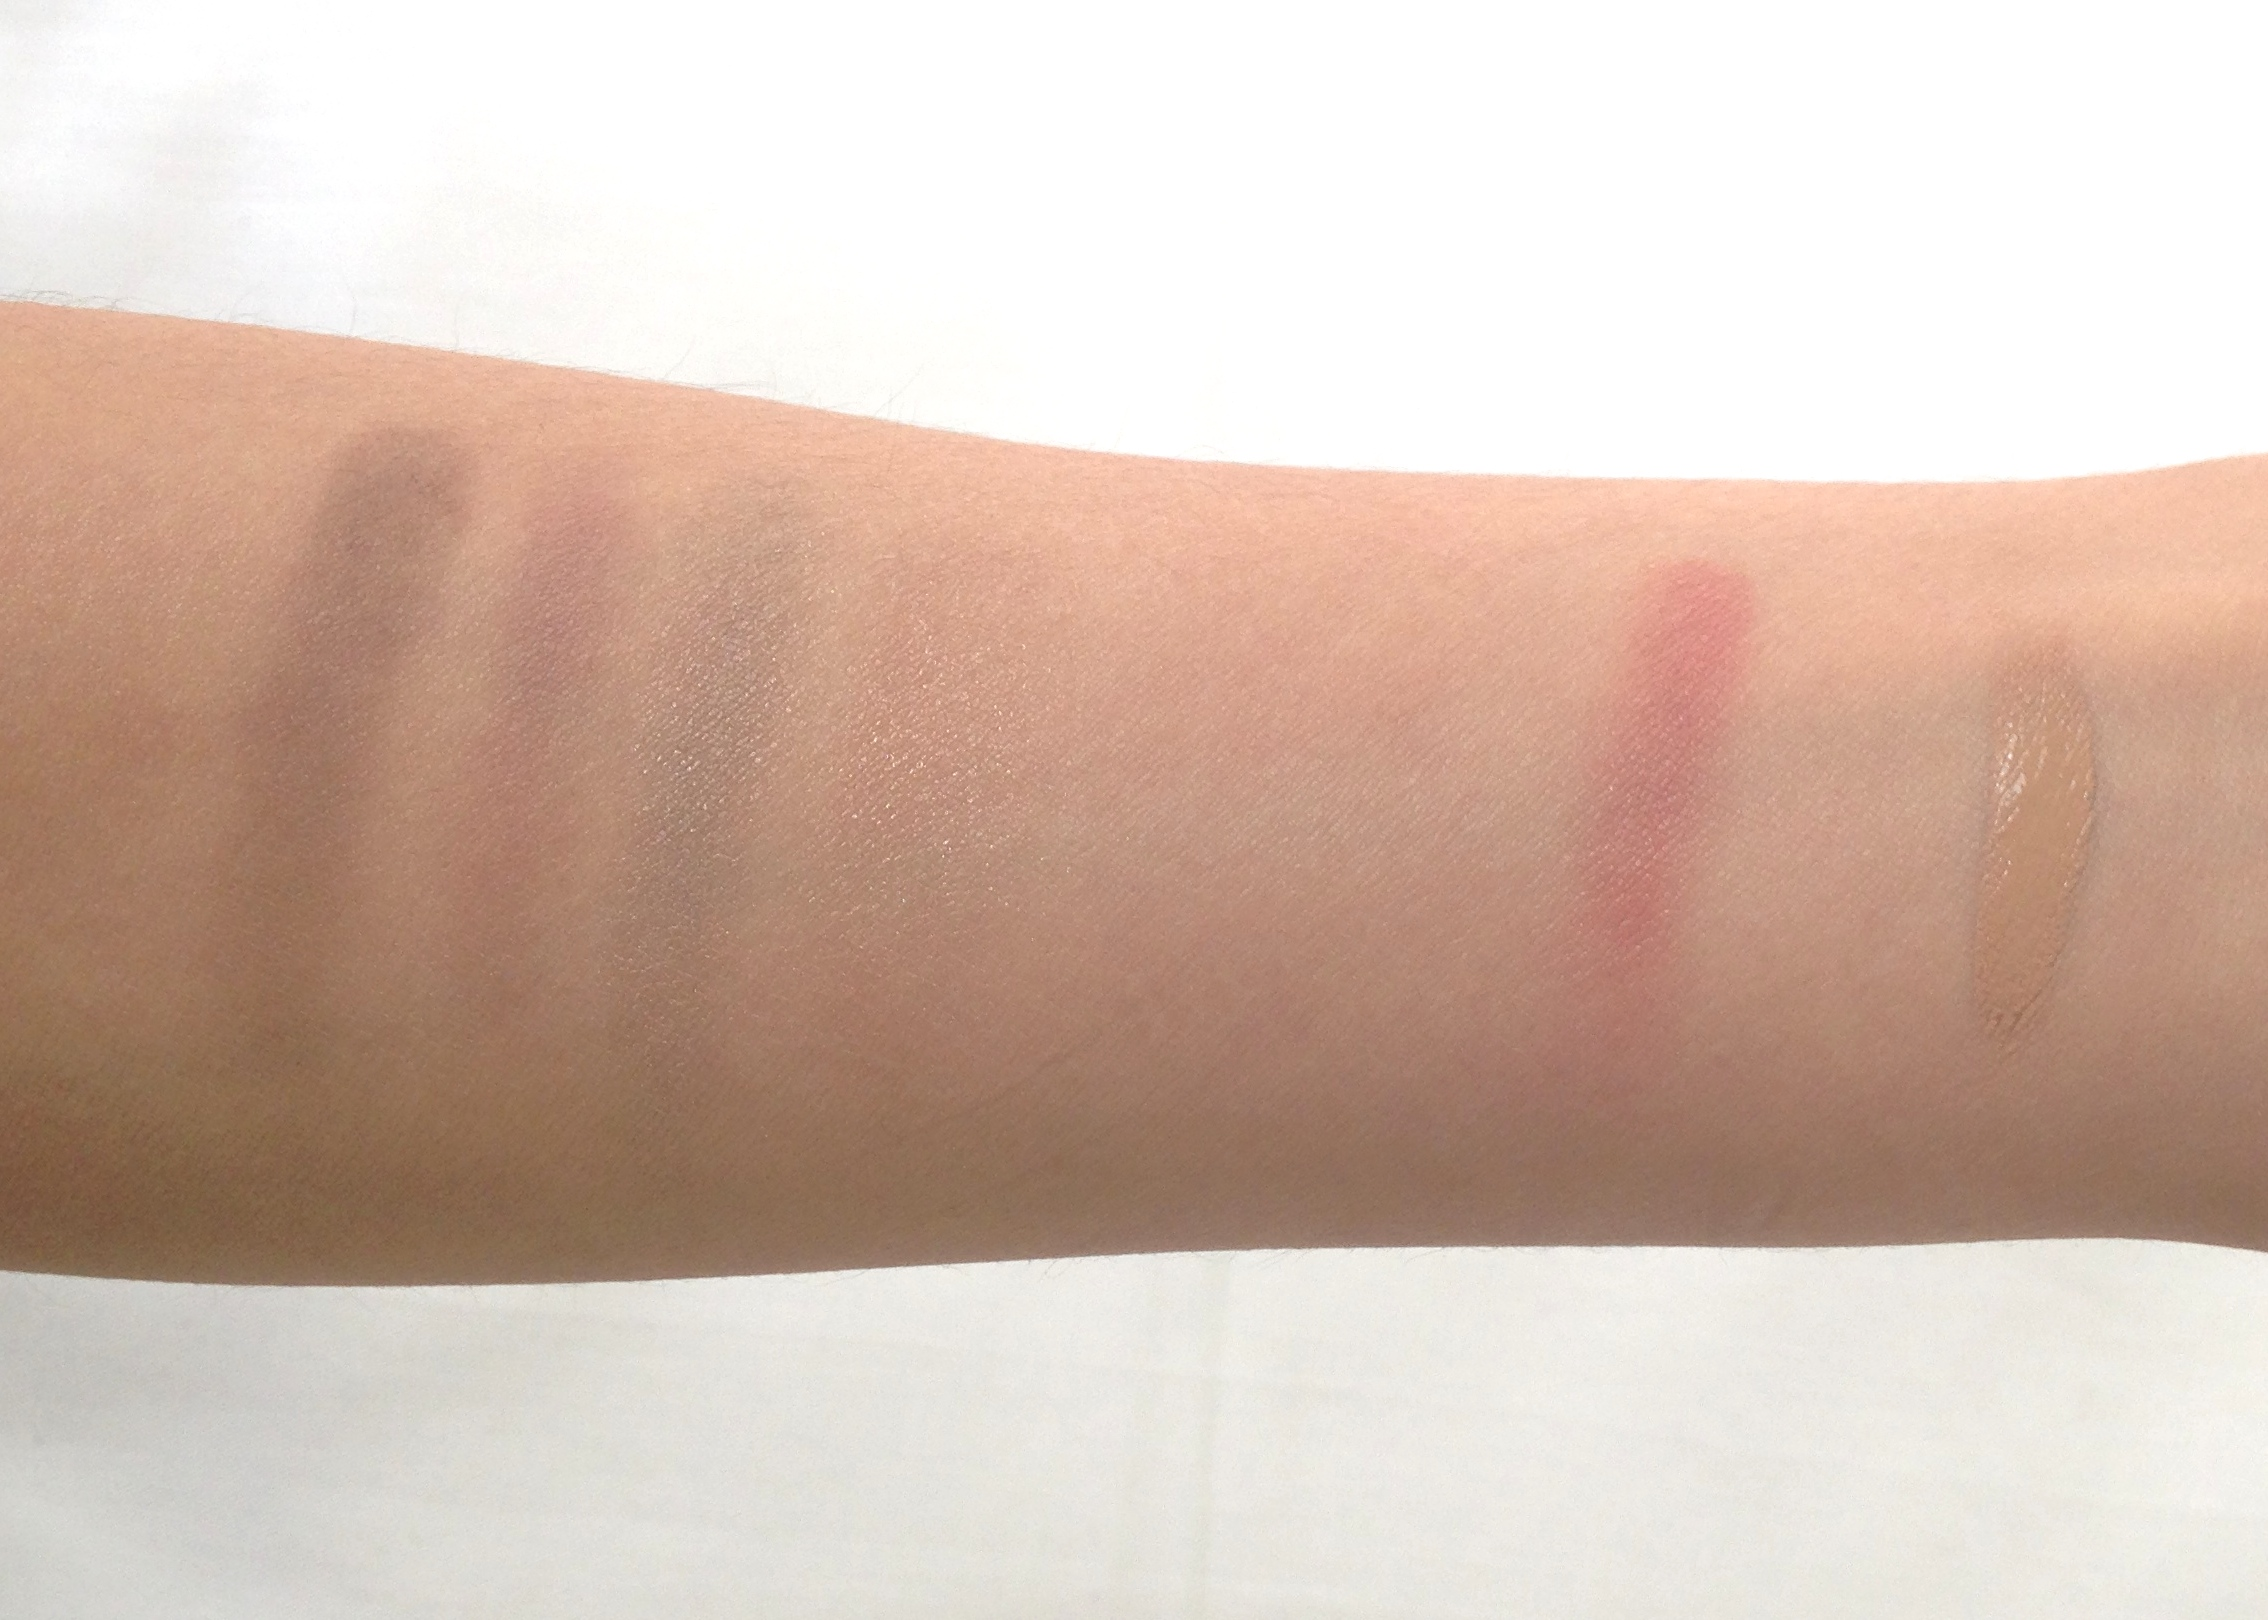 Swatches L-R: Burberry Pink Taupe, Bobbi Brown Pot Rouge in Pale Pink, Marcelle BB Cream in Medium to Dark